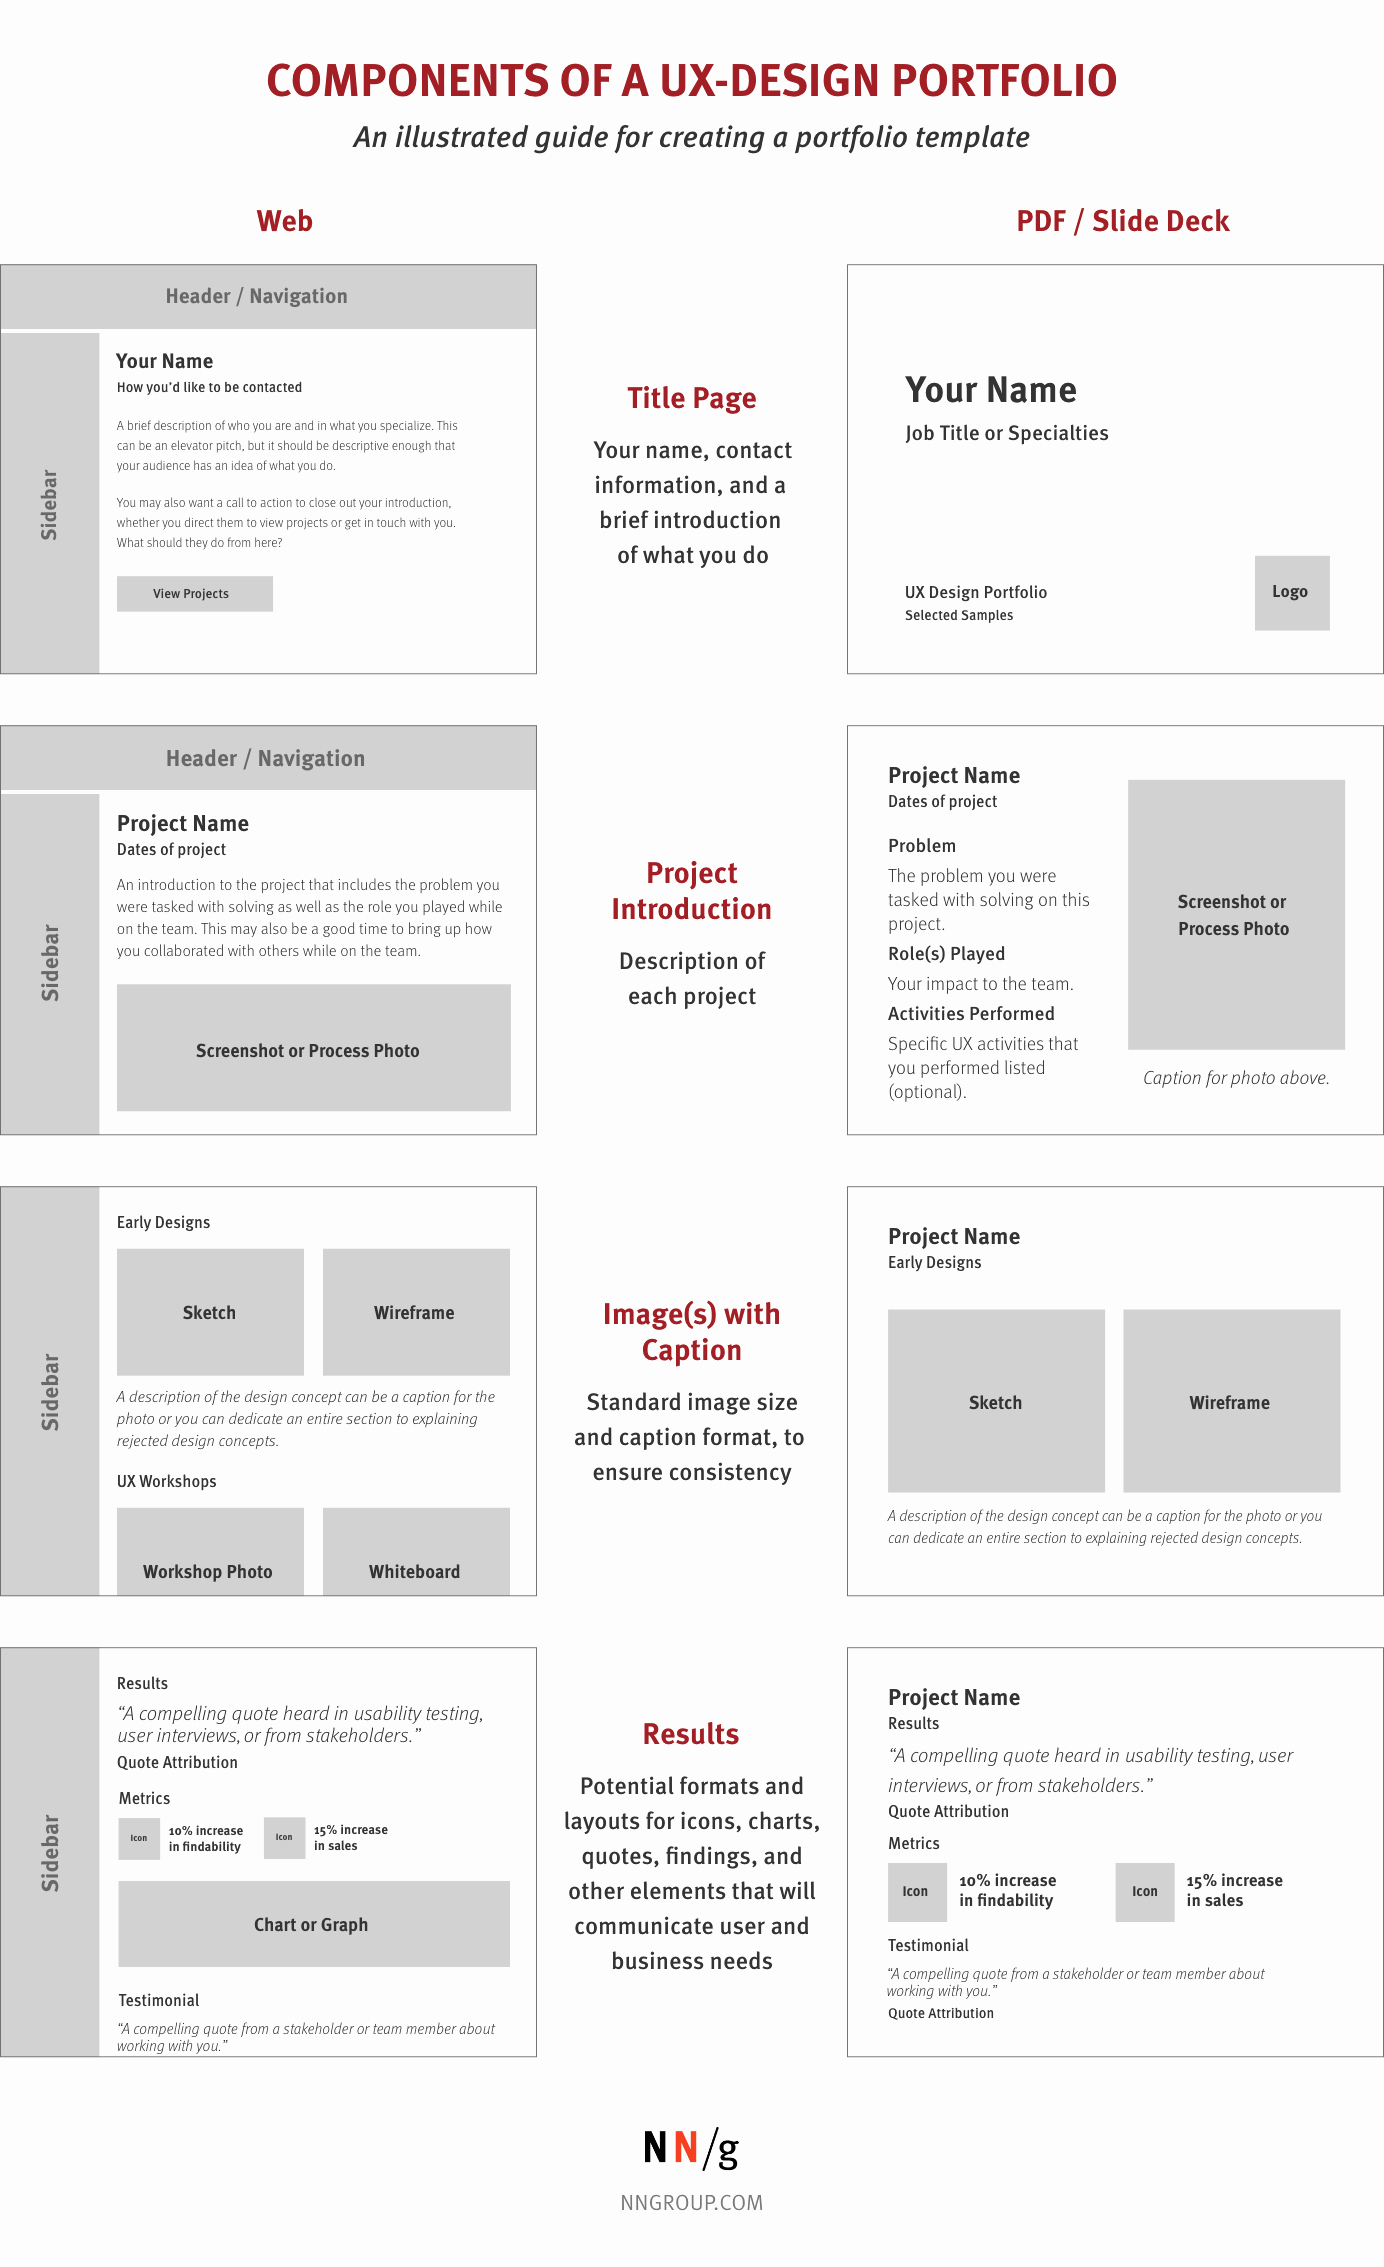 Portfolio Title Page Template Inspirational 5 Steps to Creating A Ux Design Portfolio